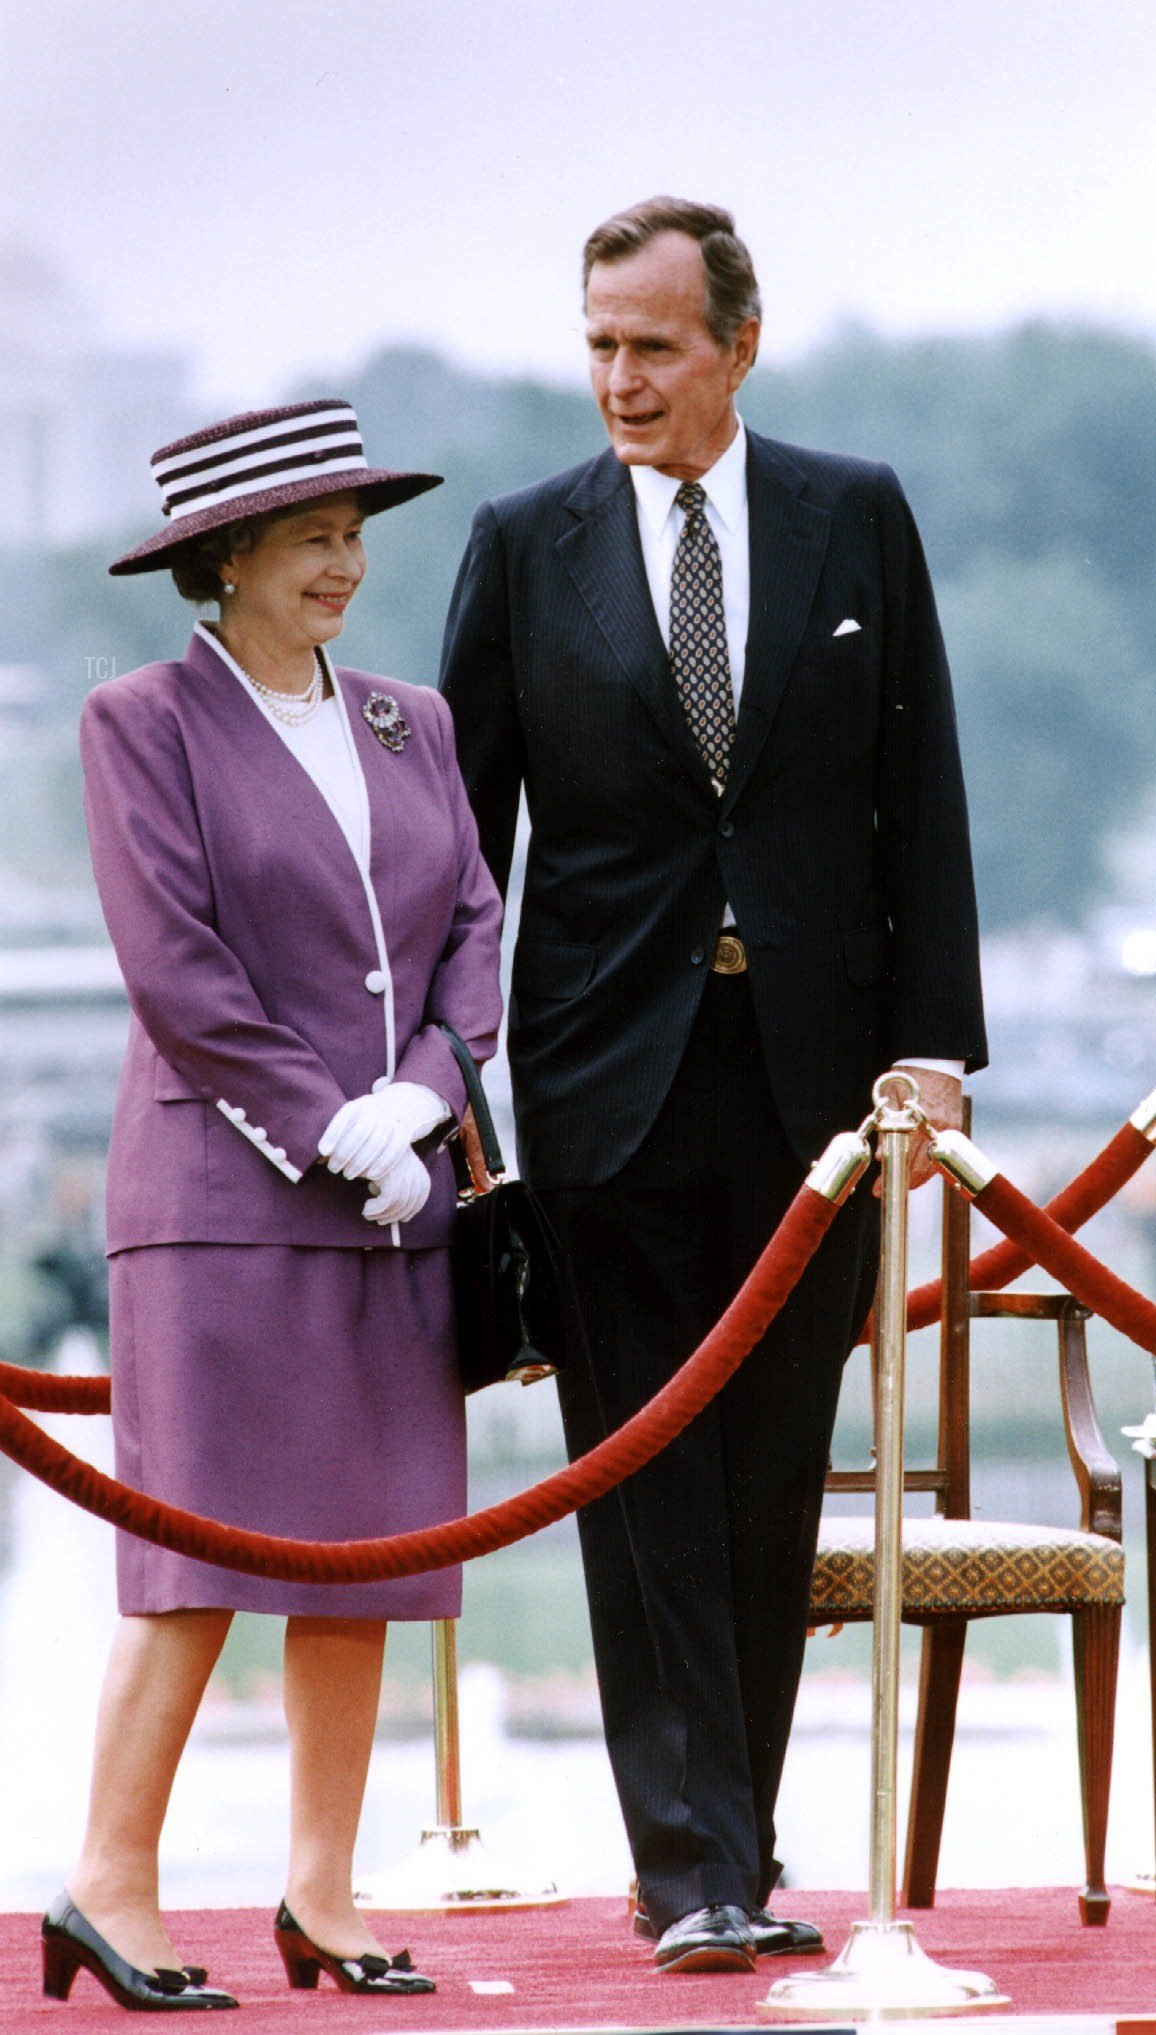 US President George Bush (R) talks to Great Britain's Queen Elizabeth II (L) during a 14 May 1991 welcoming ceremony at the White House, Washington, DC. The queen was given a red carpet welcome and a 21-gun salute